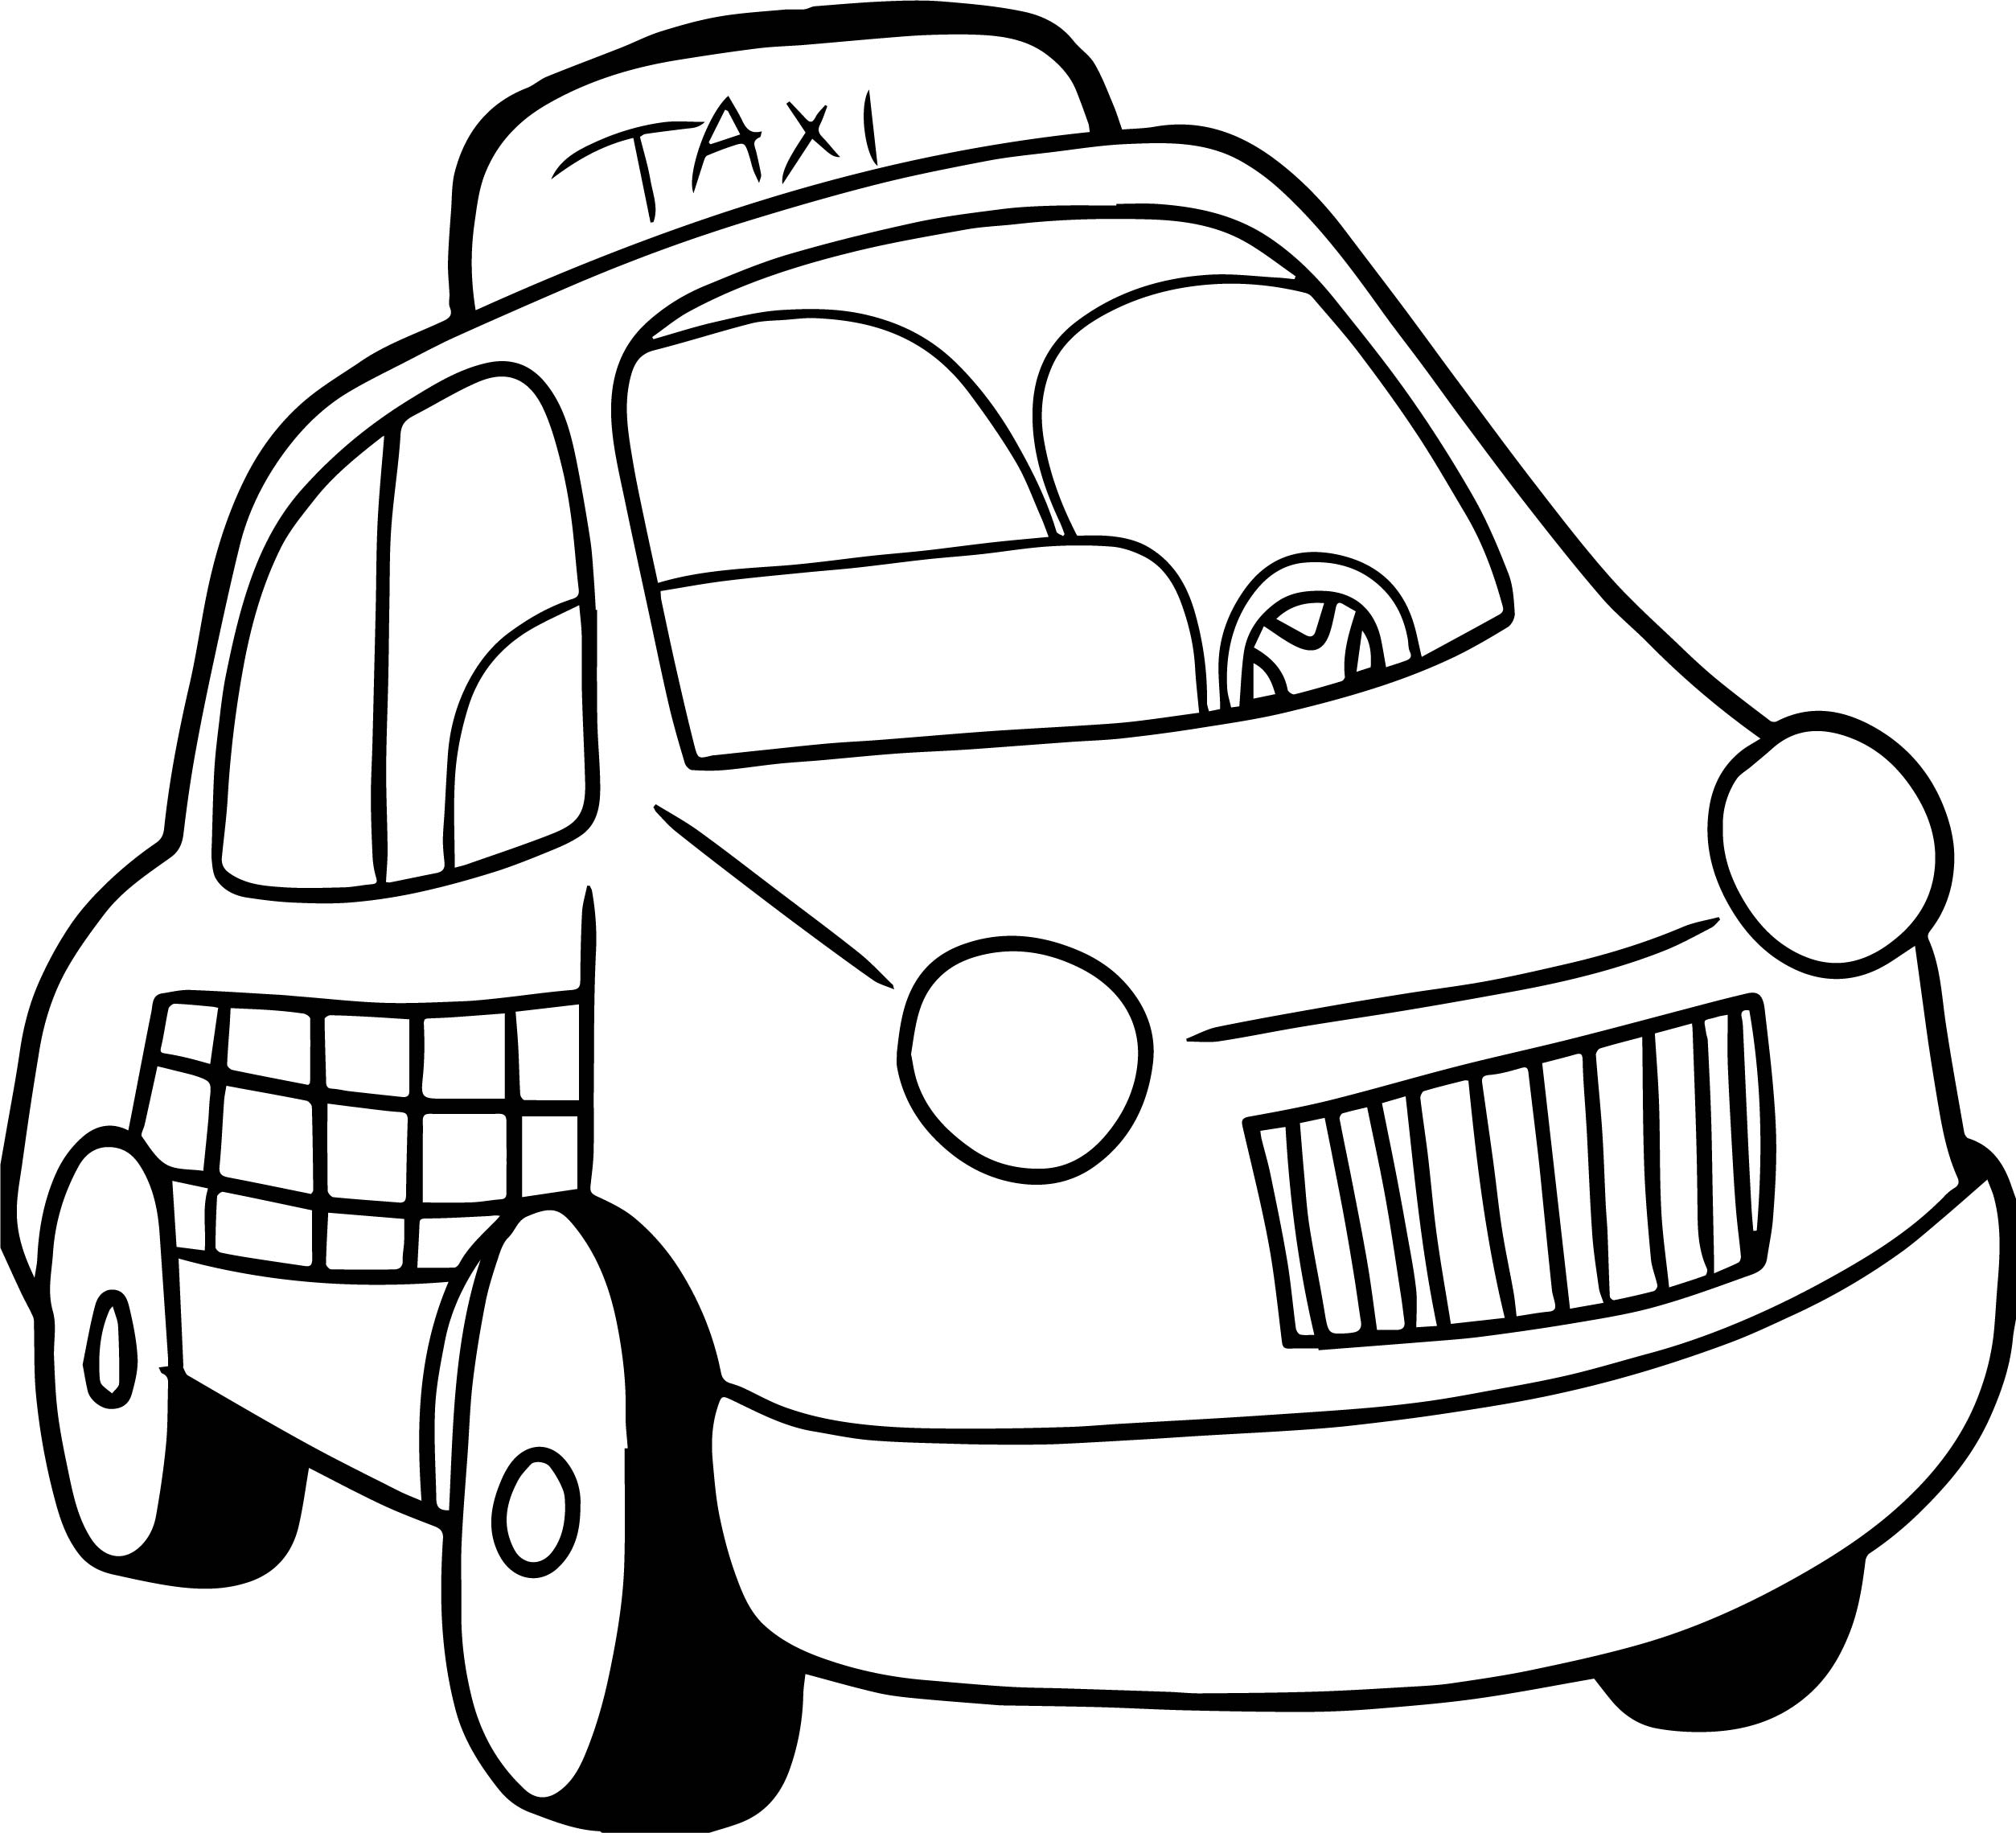 2507x2279 Taxi Driver Car Cartoon Coloring Page Wecoloringpage